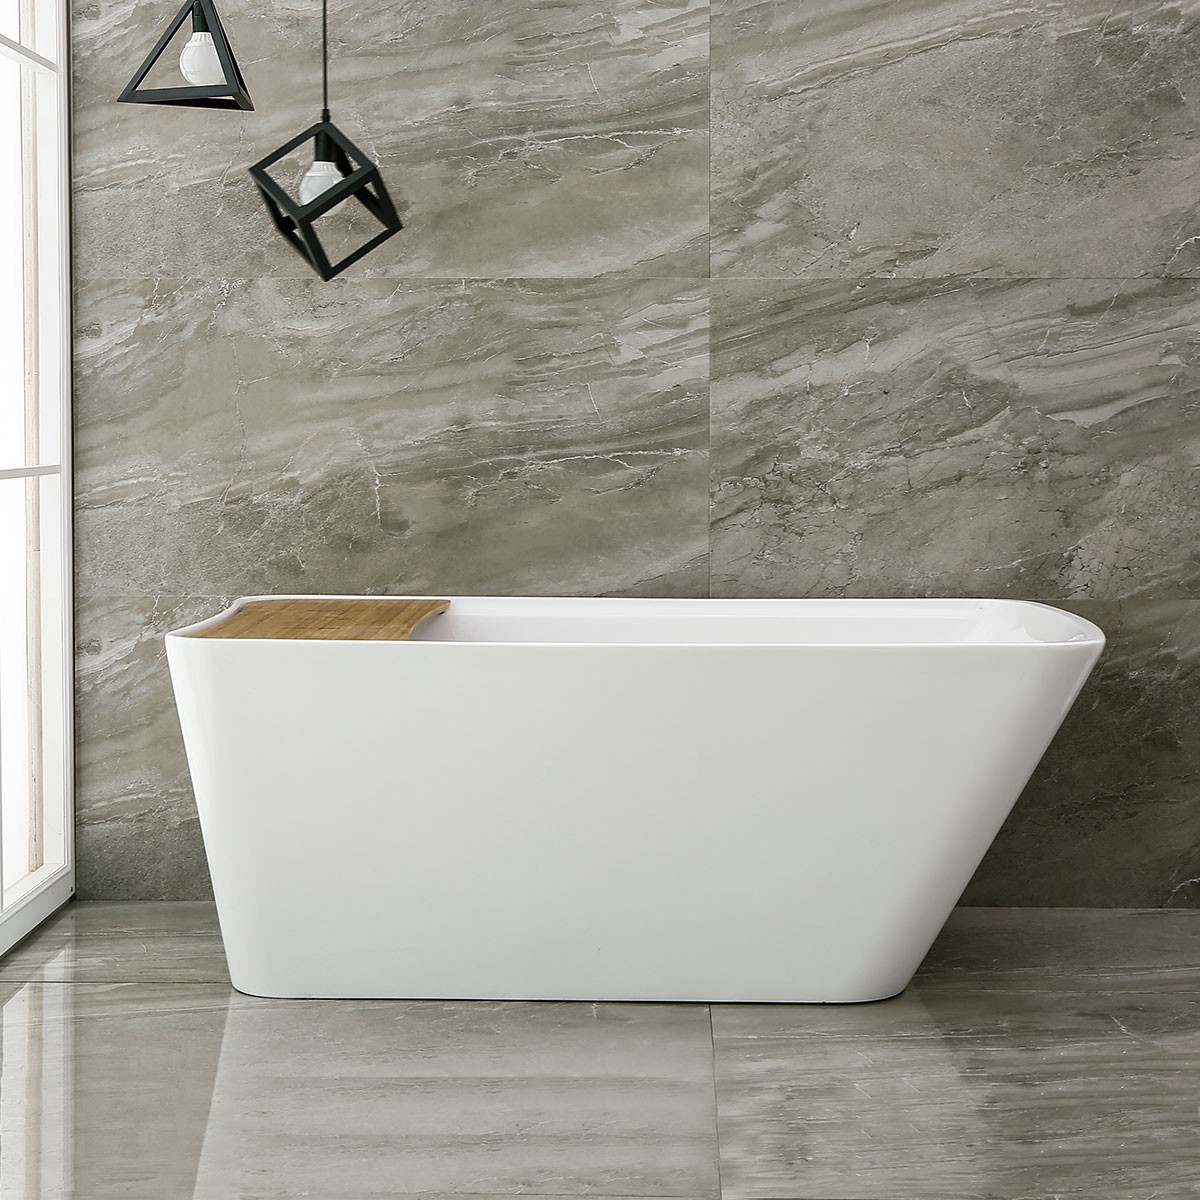 59 In Freestanding Bathtub - Acrylic Pure White (DK-PW-86578)